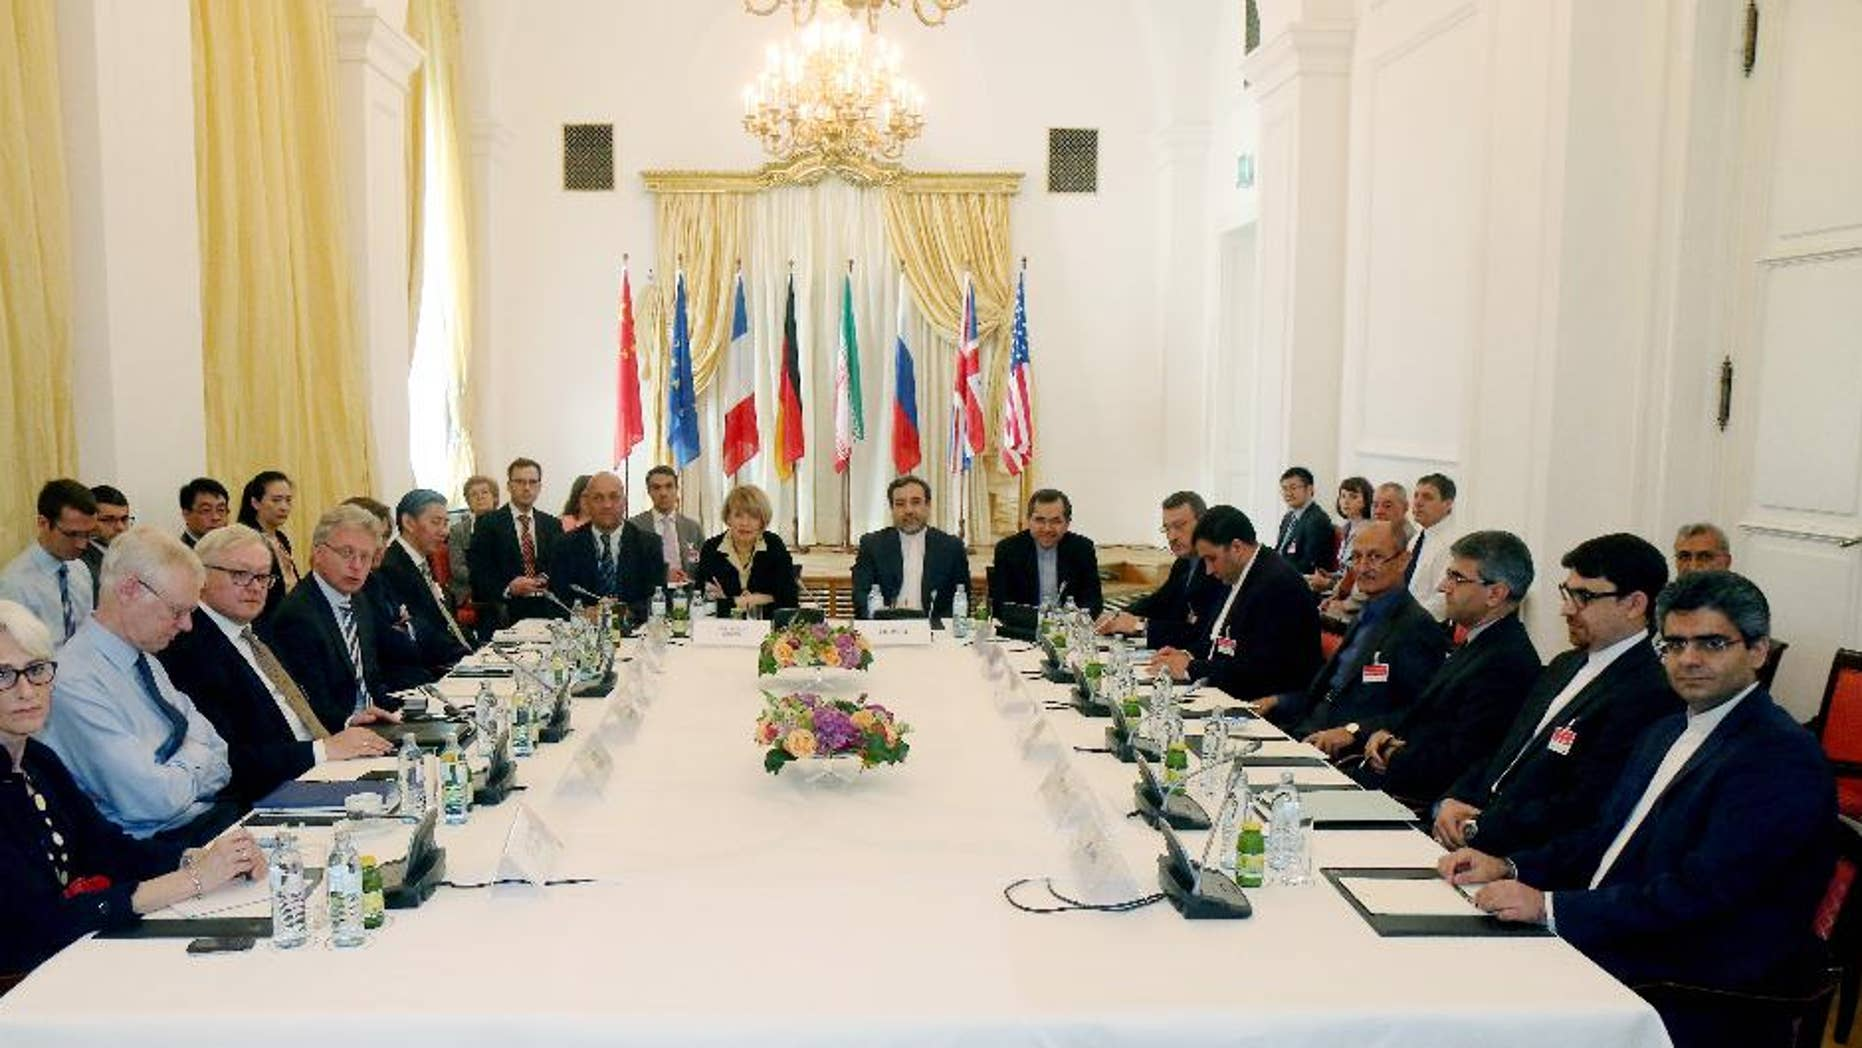 FILE - In this Friday, June 12, 2015 file photo delegates sit around a table prior to a bilateral meeting as part of the closed-door nuclear talks with Iran at a hotel in Vienna, Austria. Iran and six powers are still apart on all main elements of a nuclear deal with less than two weeks to go to their June 30 target date and will likely have to extend their negotiations, two diplomats tell The Associated Press. (AP Photo/Ronald Zak, File)